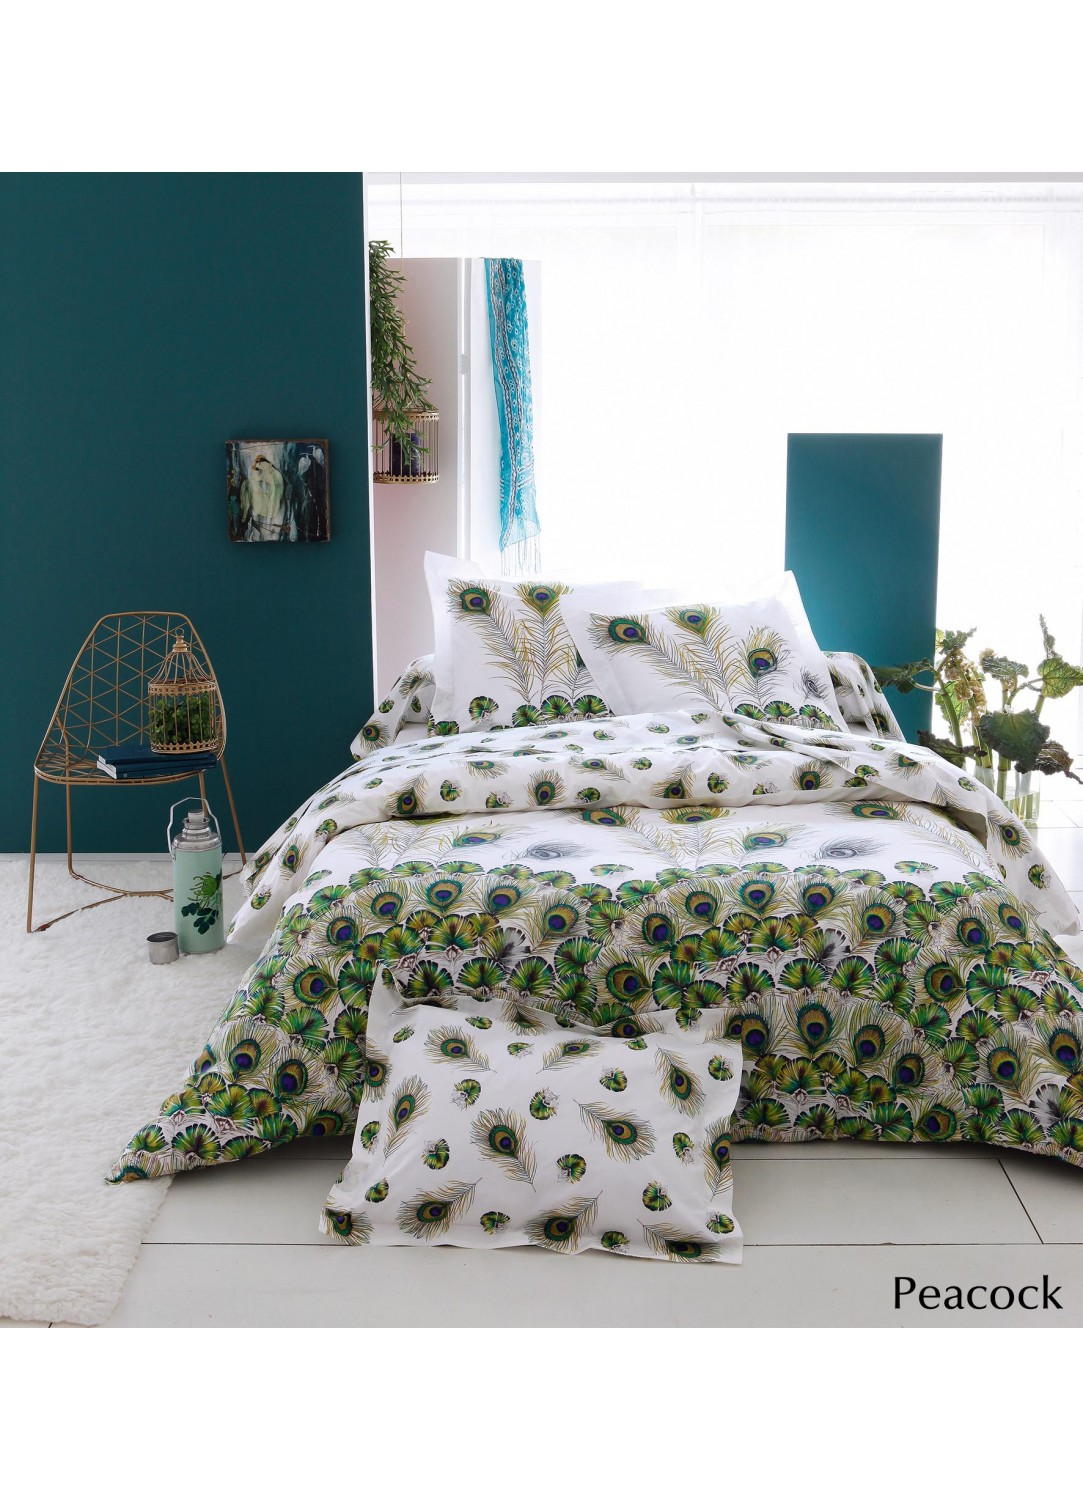 drap plat peacock blanc vert homemaison vente en ligne draps. Black Bedroom Furniture Sets. Home Design Ideas